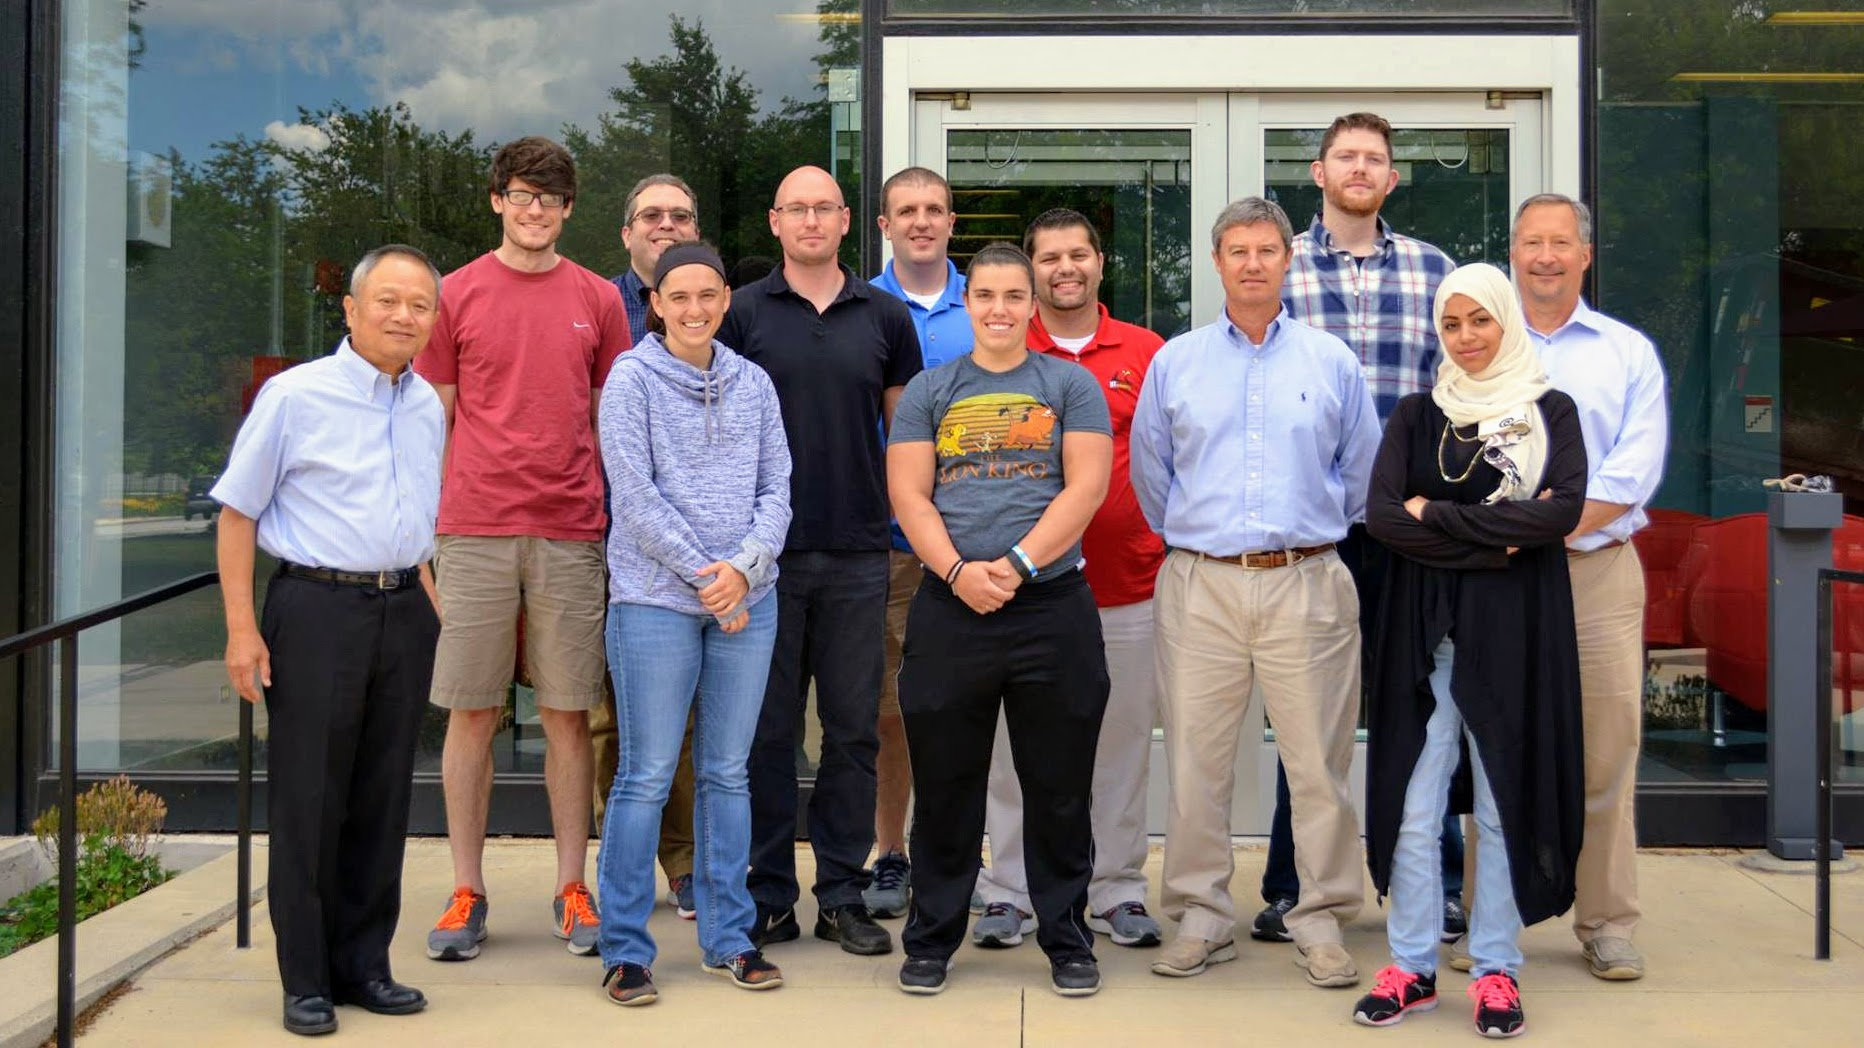 In June, students in the online Master of Health Physics program gathered on campus for their Instrumentation for Radiation Health Physics lab class.